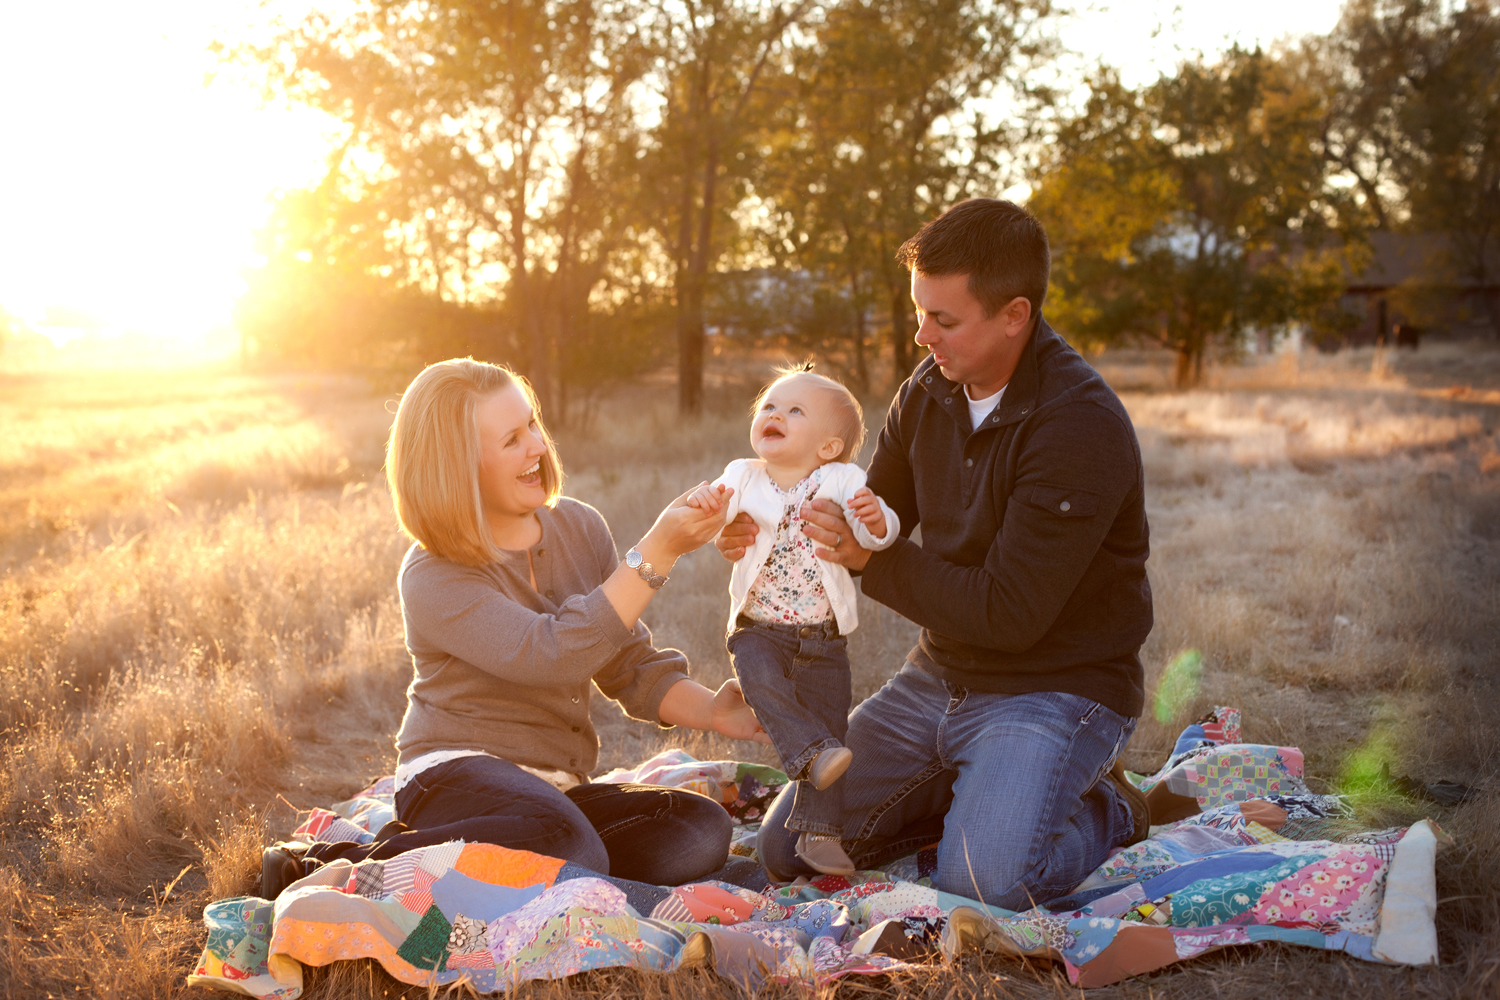 Russtanna_Photography_kearney_nebraska_natural_light_photographer_newborn_senior_family_engagement  (8).jpg